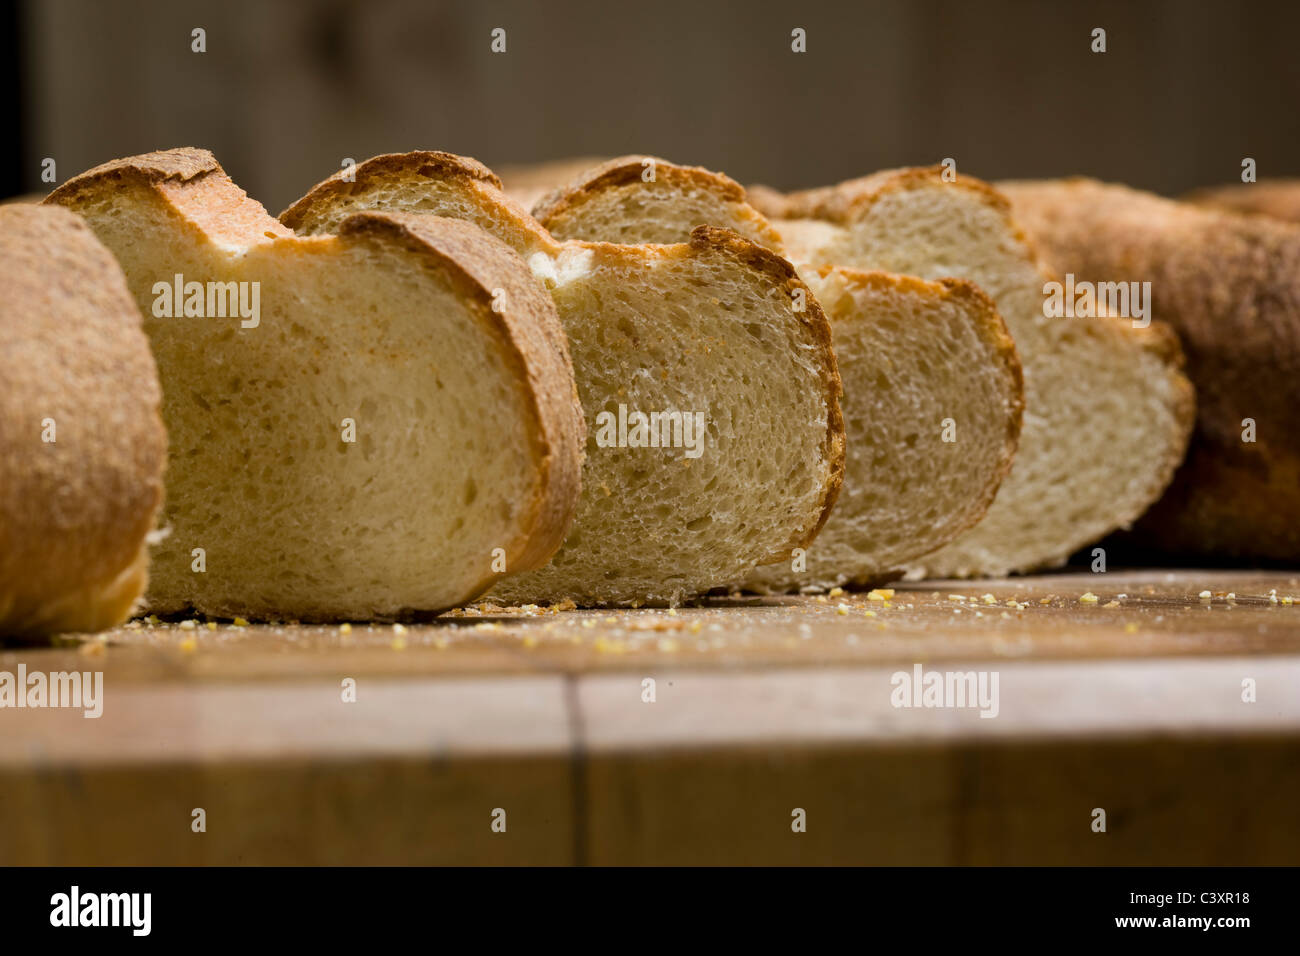 Freshly baked bread for sale in a commercial bakery - Stock Image